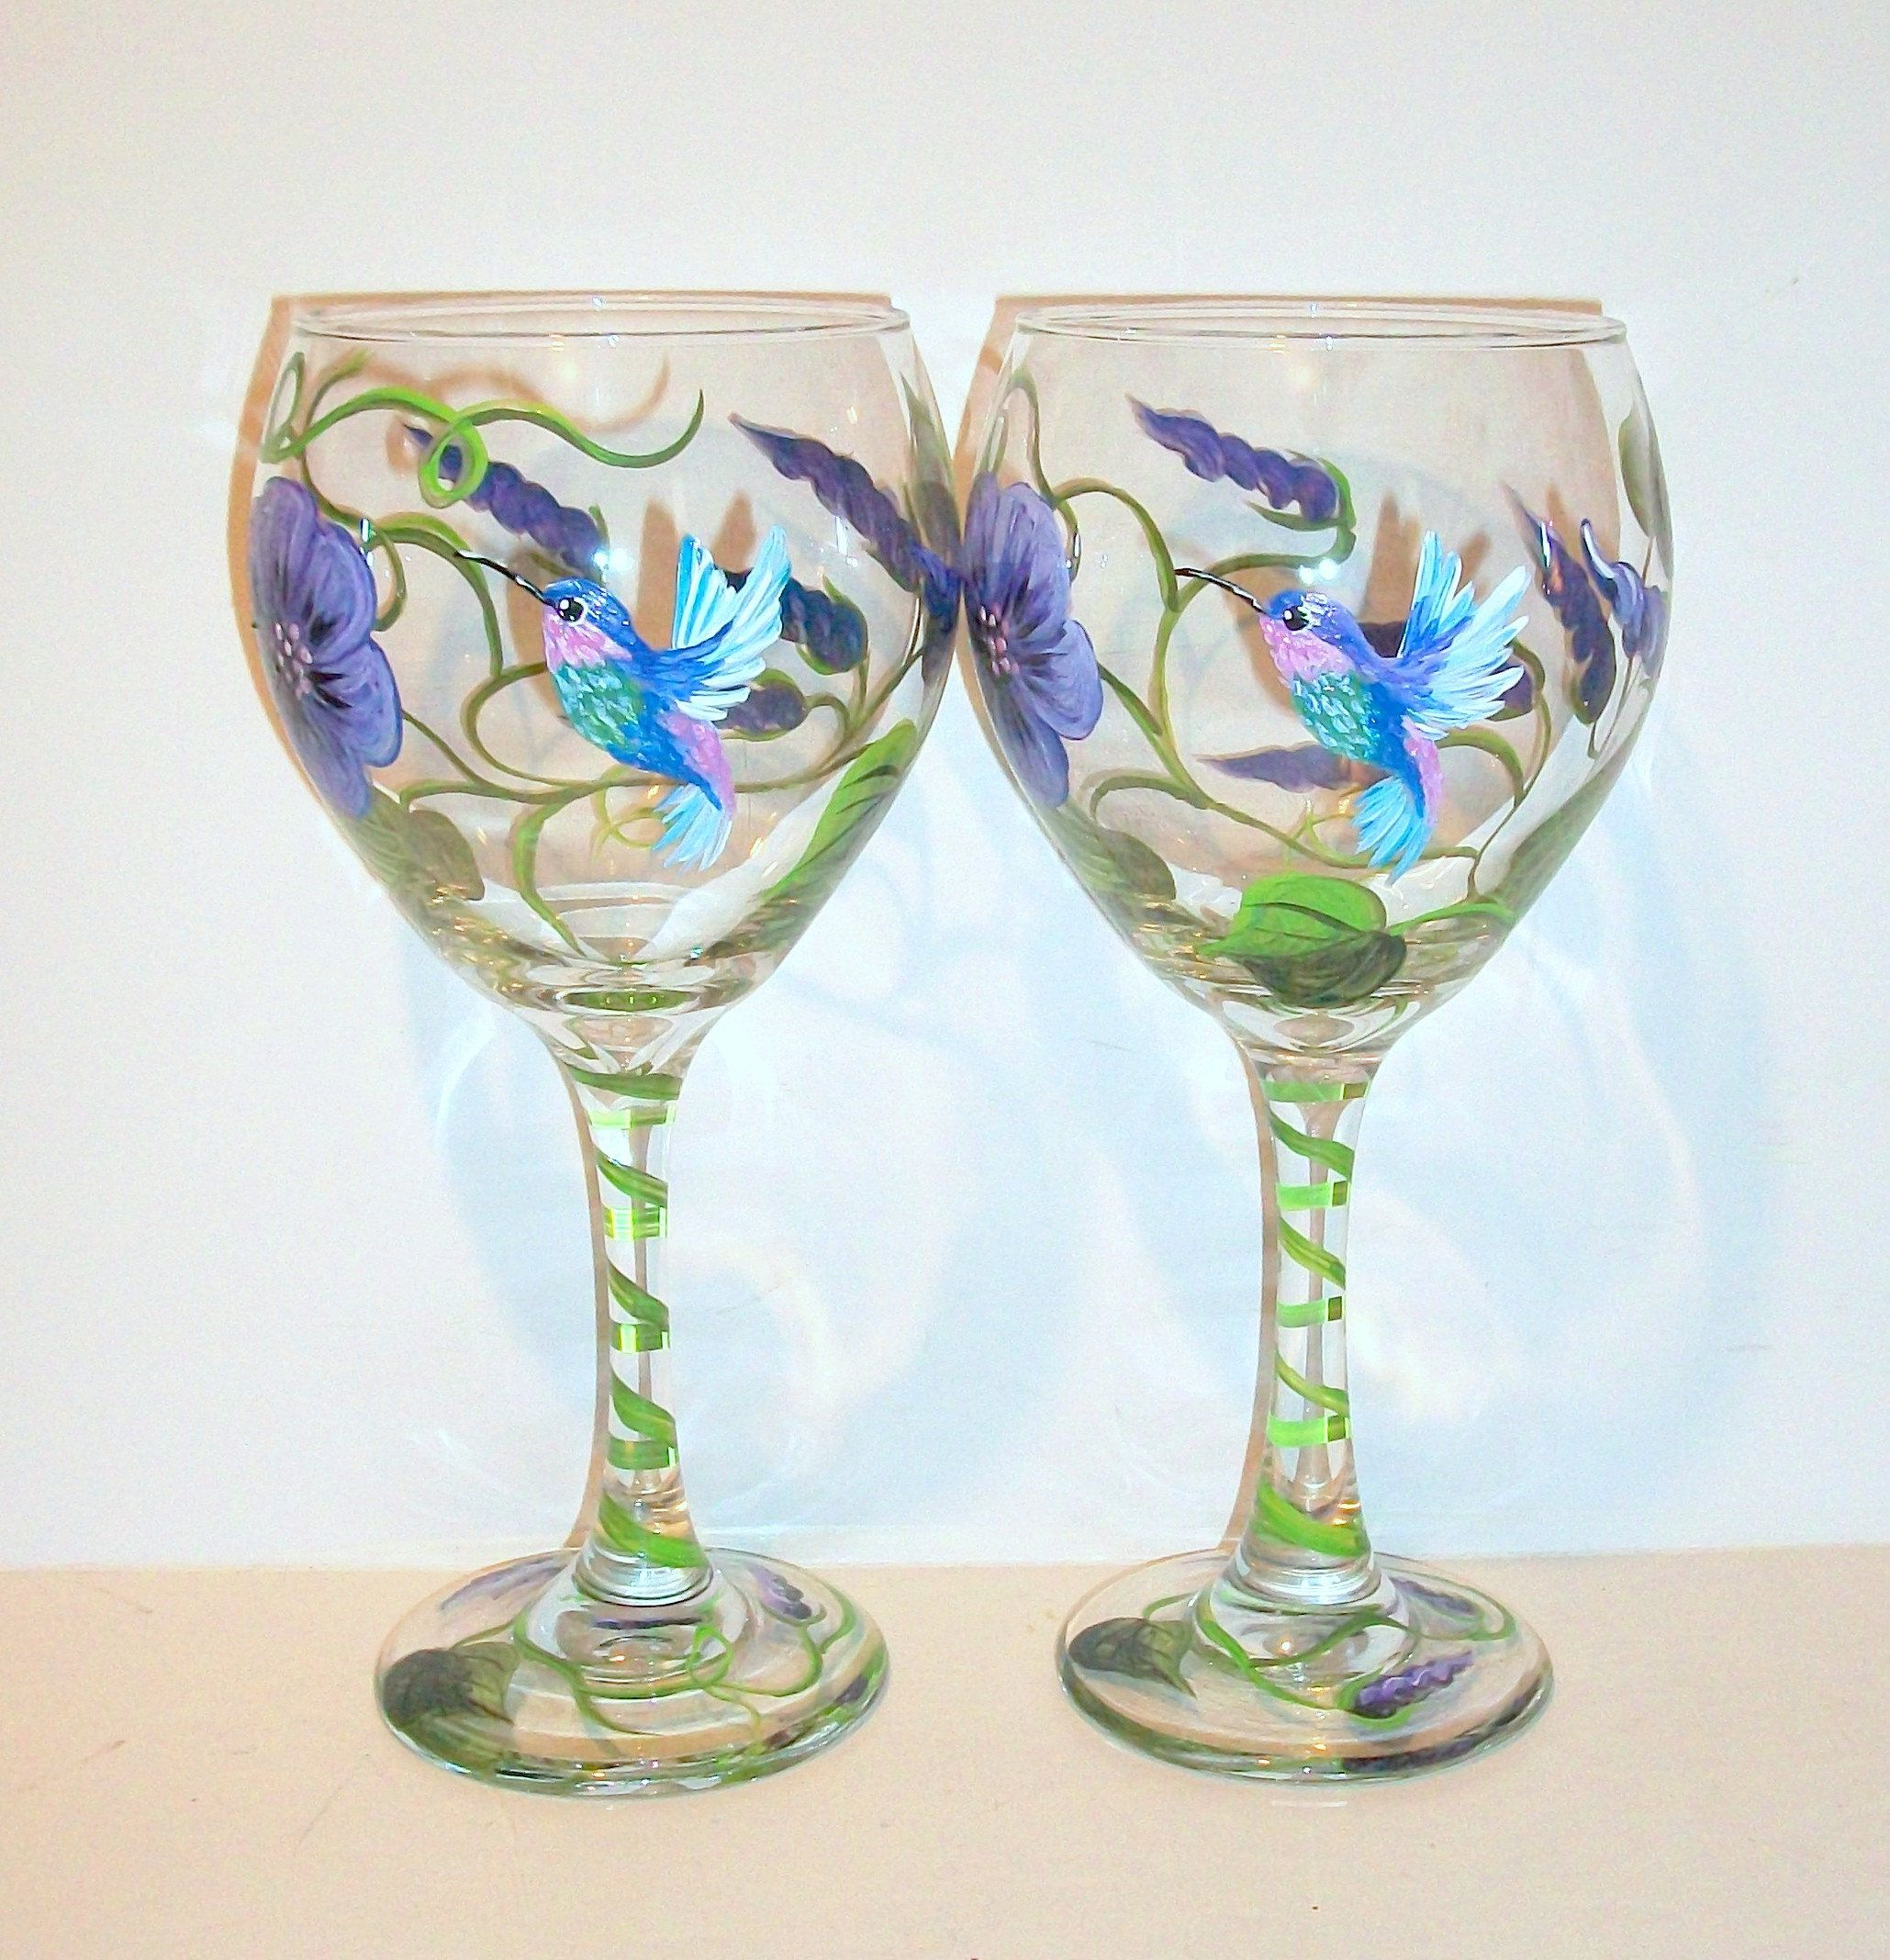 Hummingbirds And Morning Glory Vine Hand Painted Wine Glasses Etsy Painted Wine Glasses Hand Painted Wine Glasses Wine Glasses